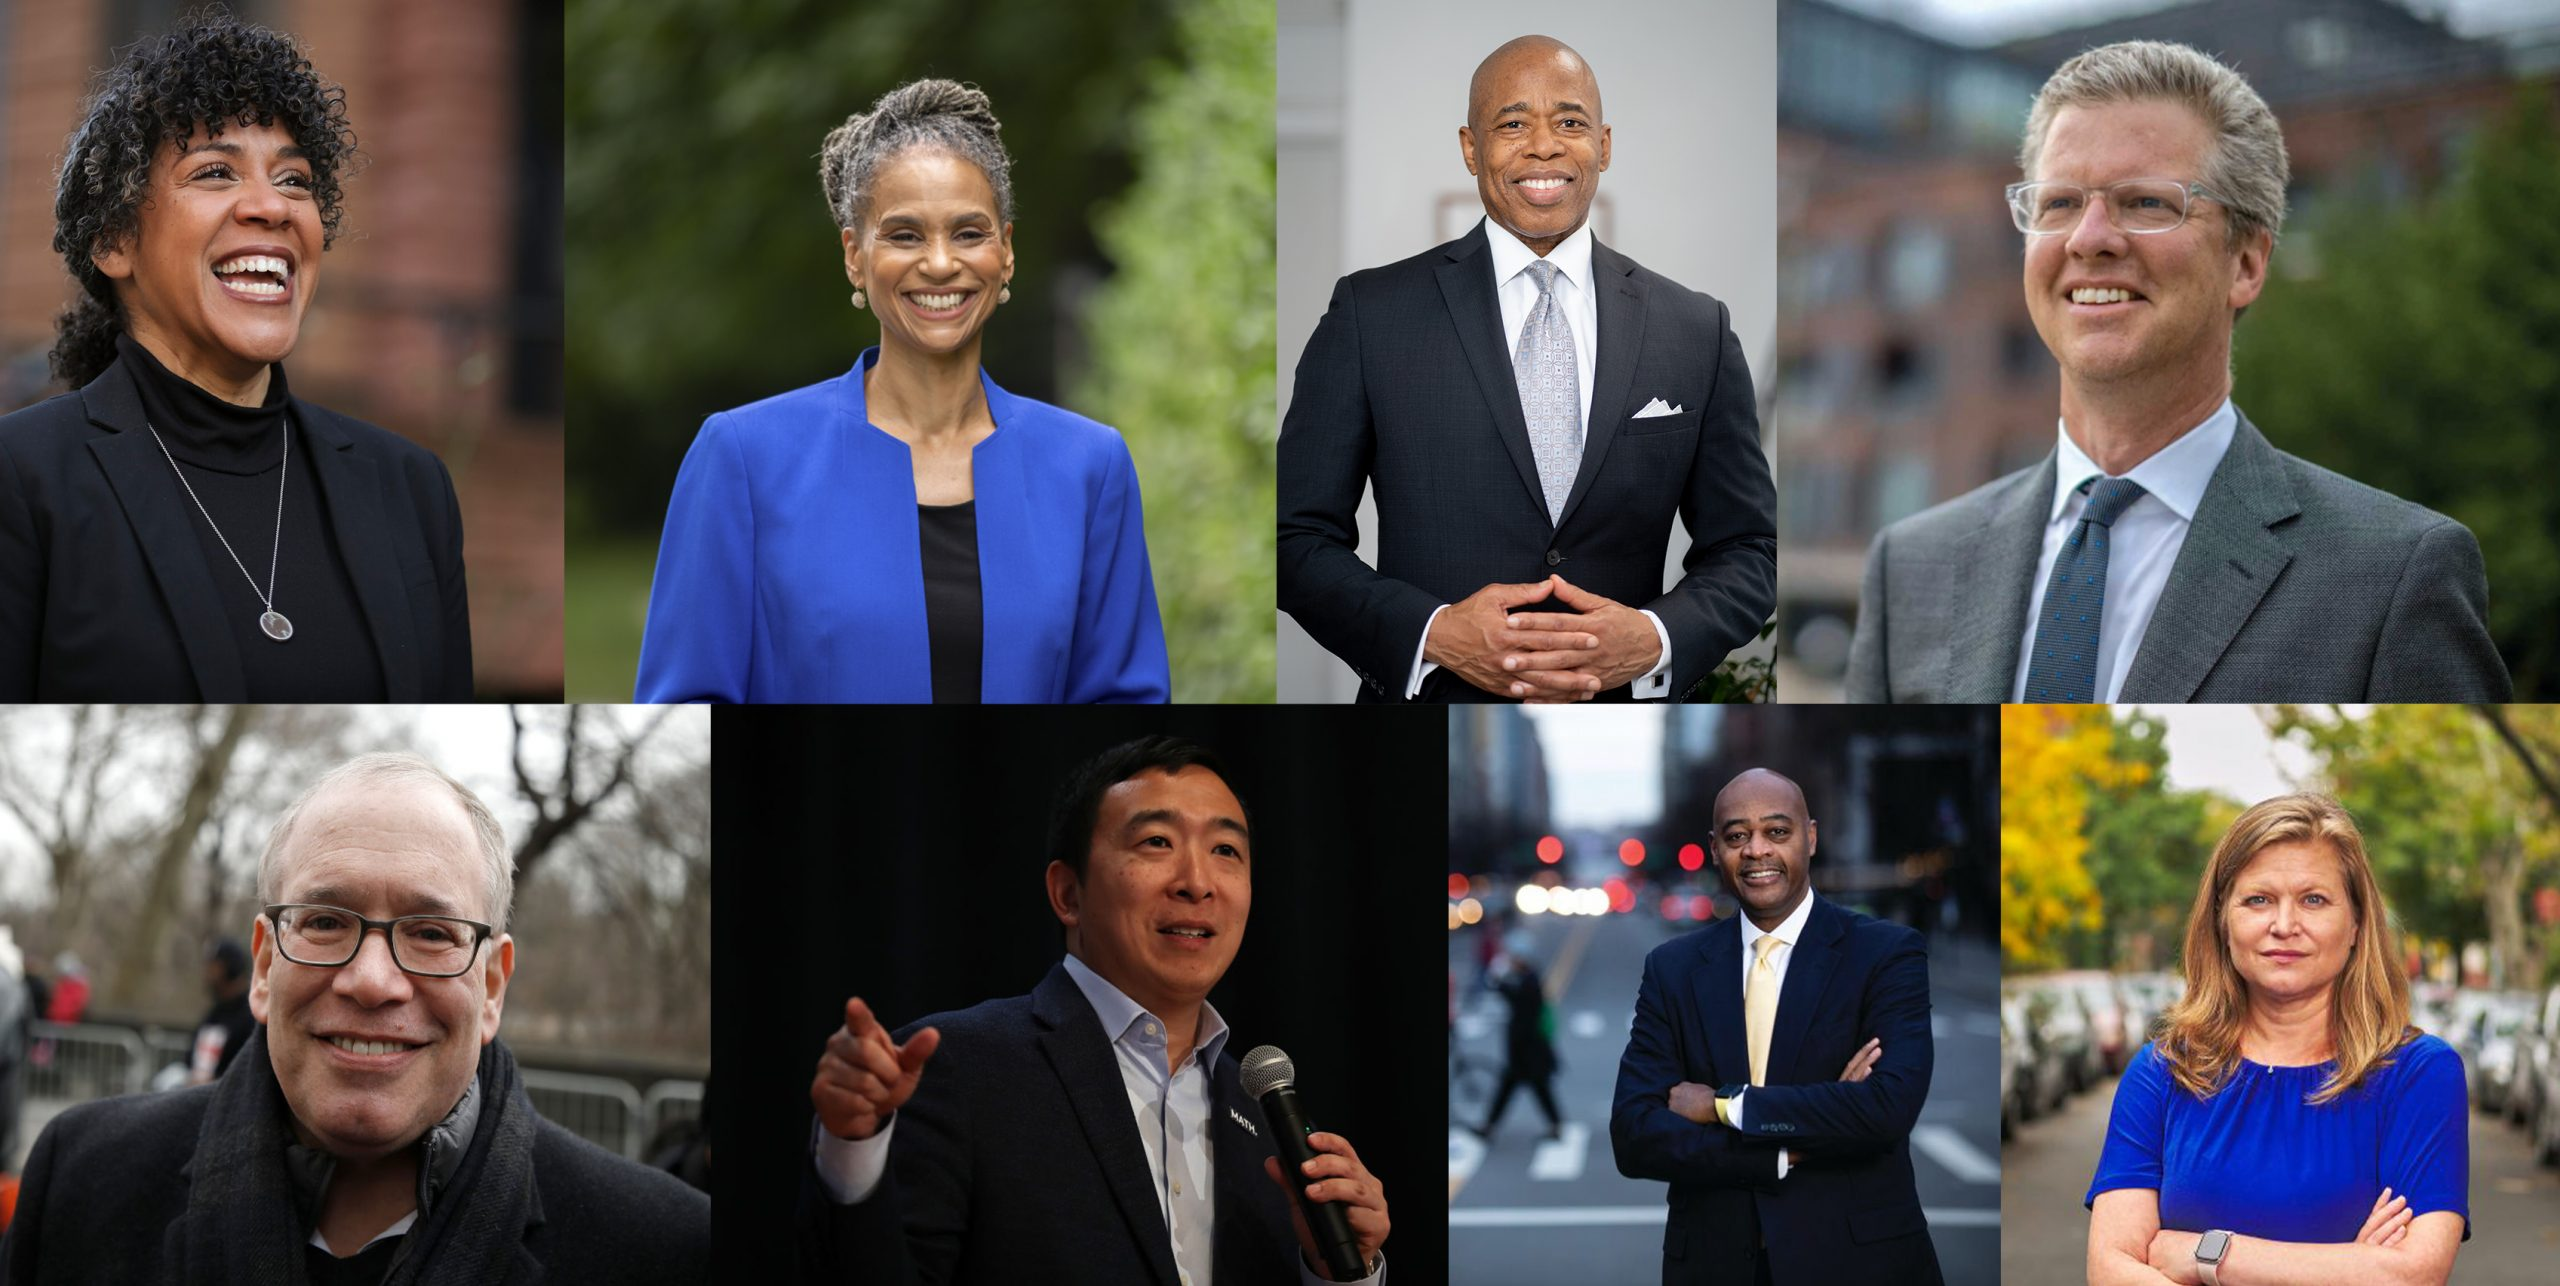 New York's Mayoral Race Is in Full Swing. We Asked Each Candidate How They Plan to Support Arts and Culture | Artnet News